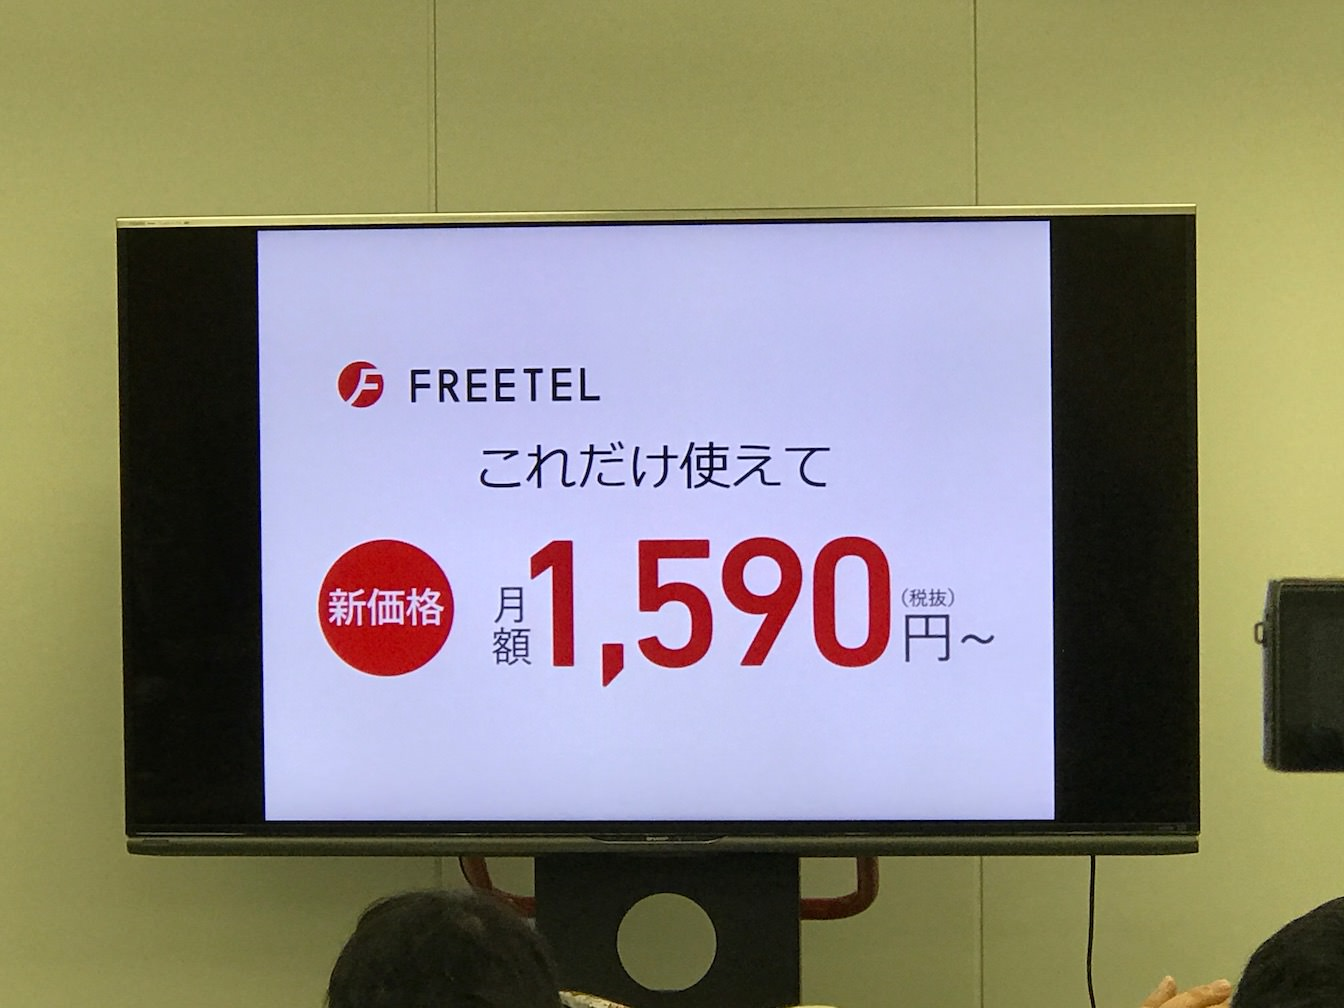 Freetel blogger event 2016 winter 19